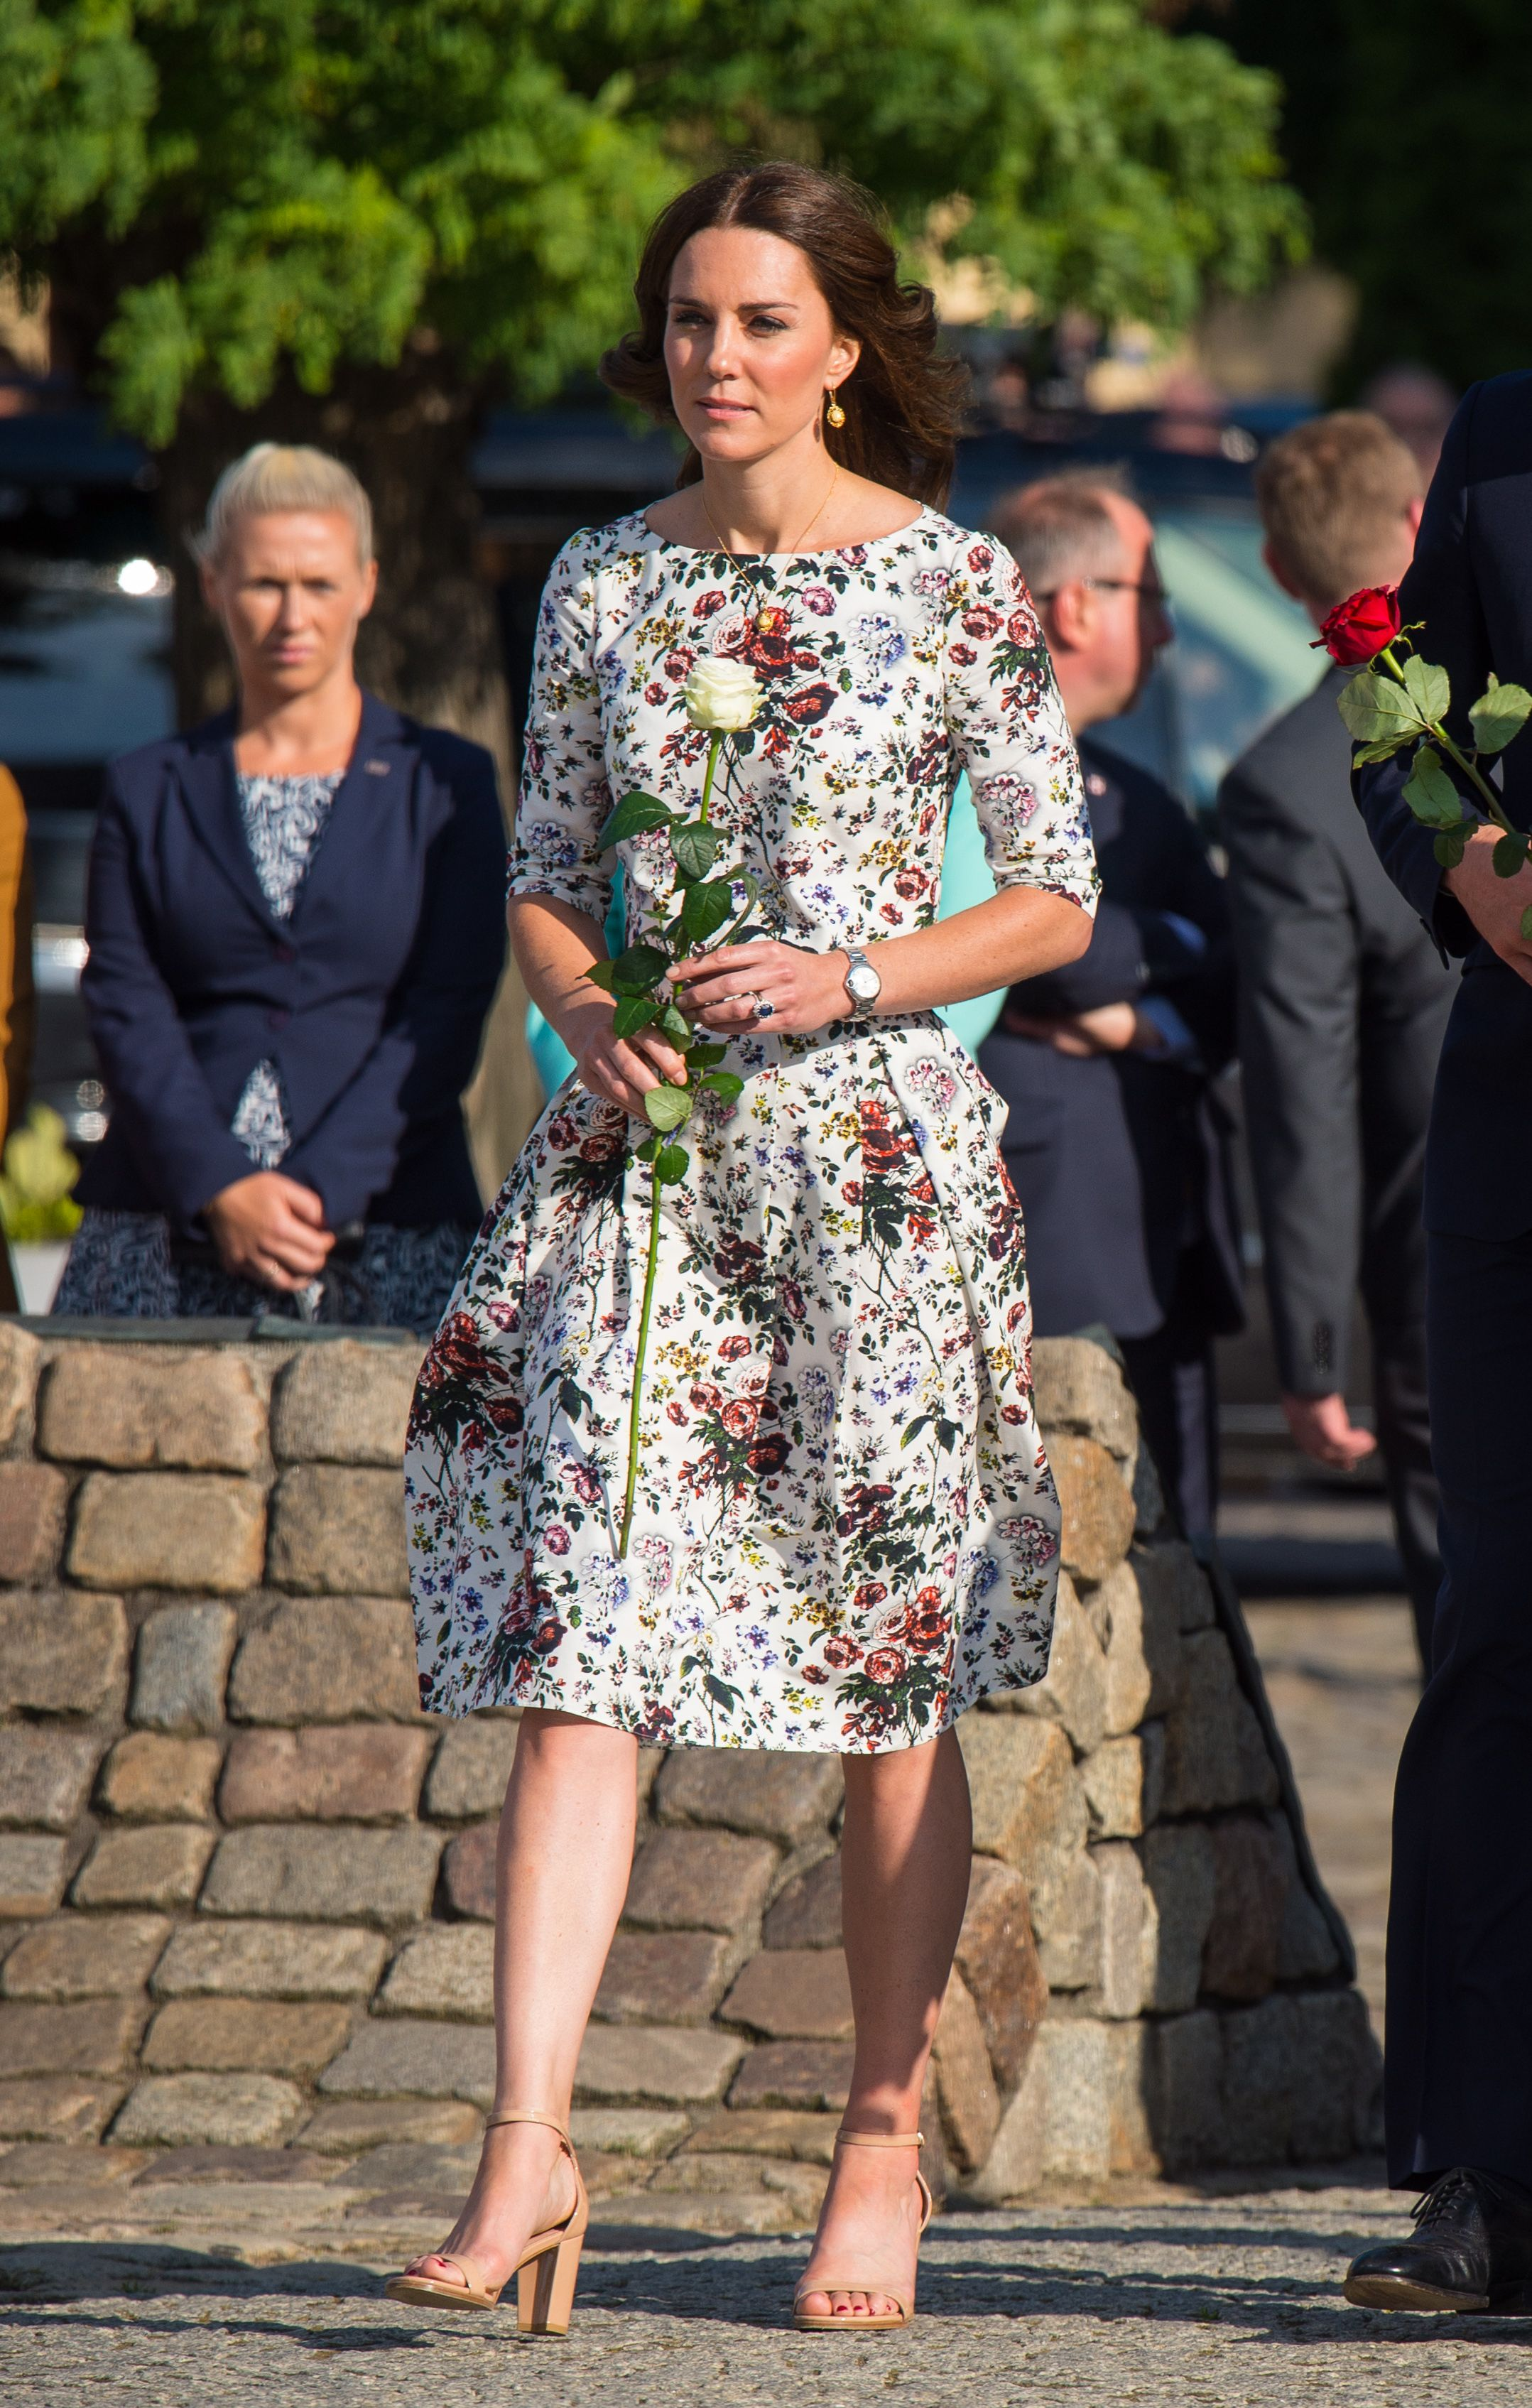 Shop Now Stuart Weitzman NearlyNude Ankle Strap Sandals, $398 For a more informal summer look, Duchess Kate wore these nude sandals from Stuart Weitzman during the royals' three-day tour of Poland and Germany in July 2017 .